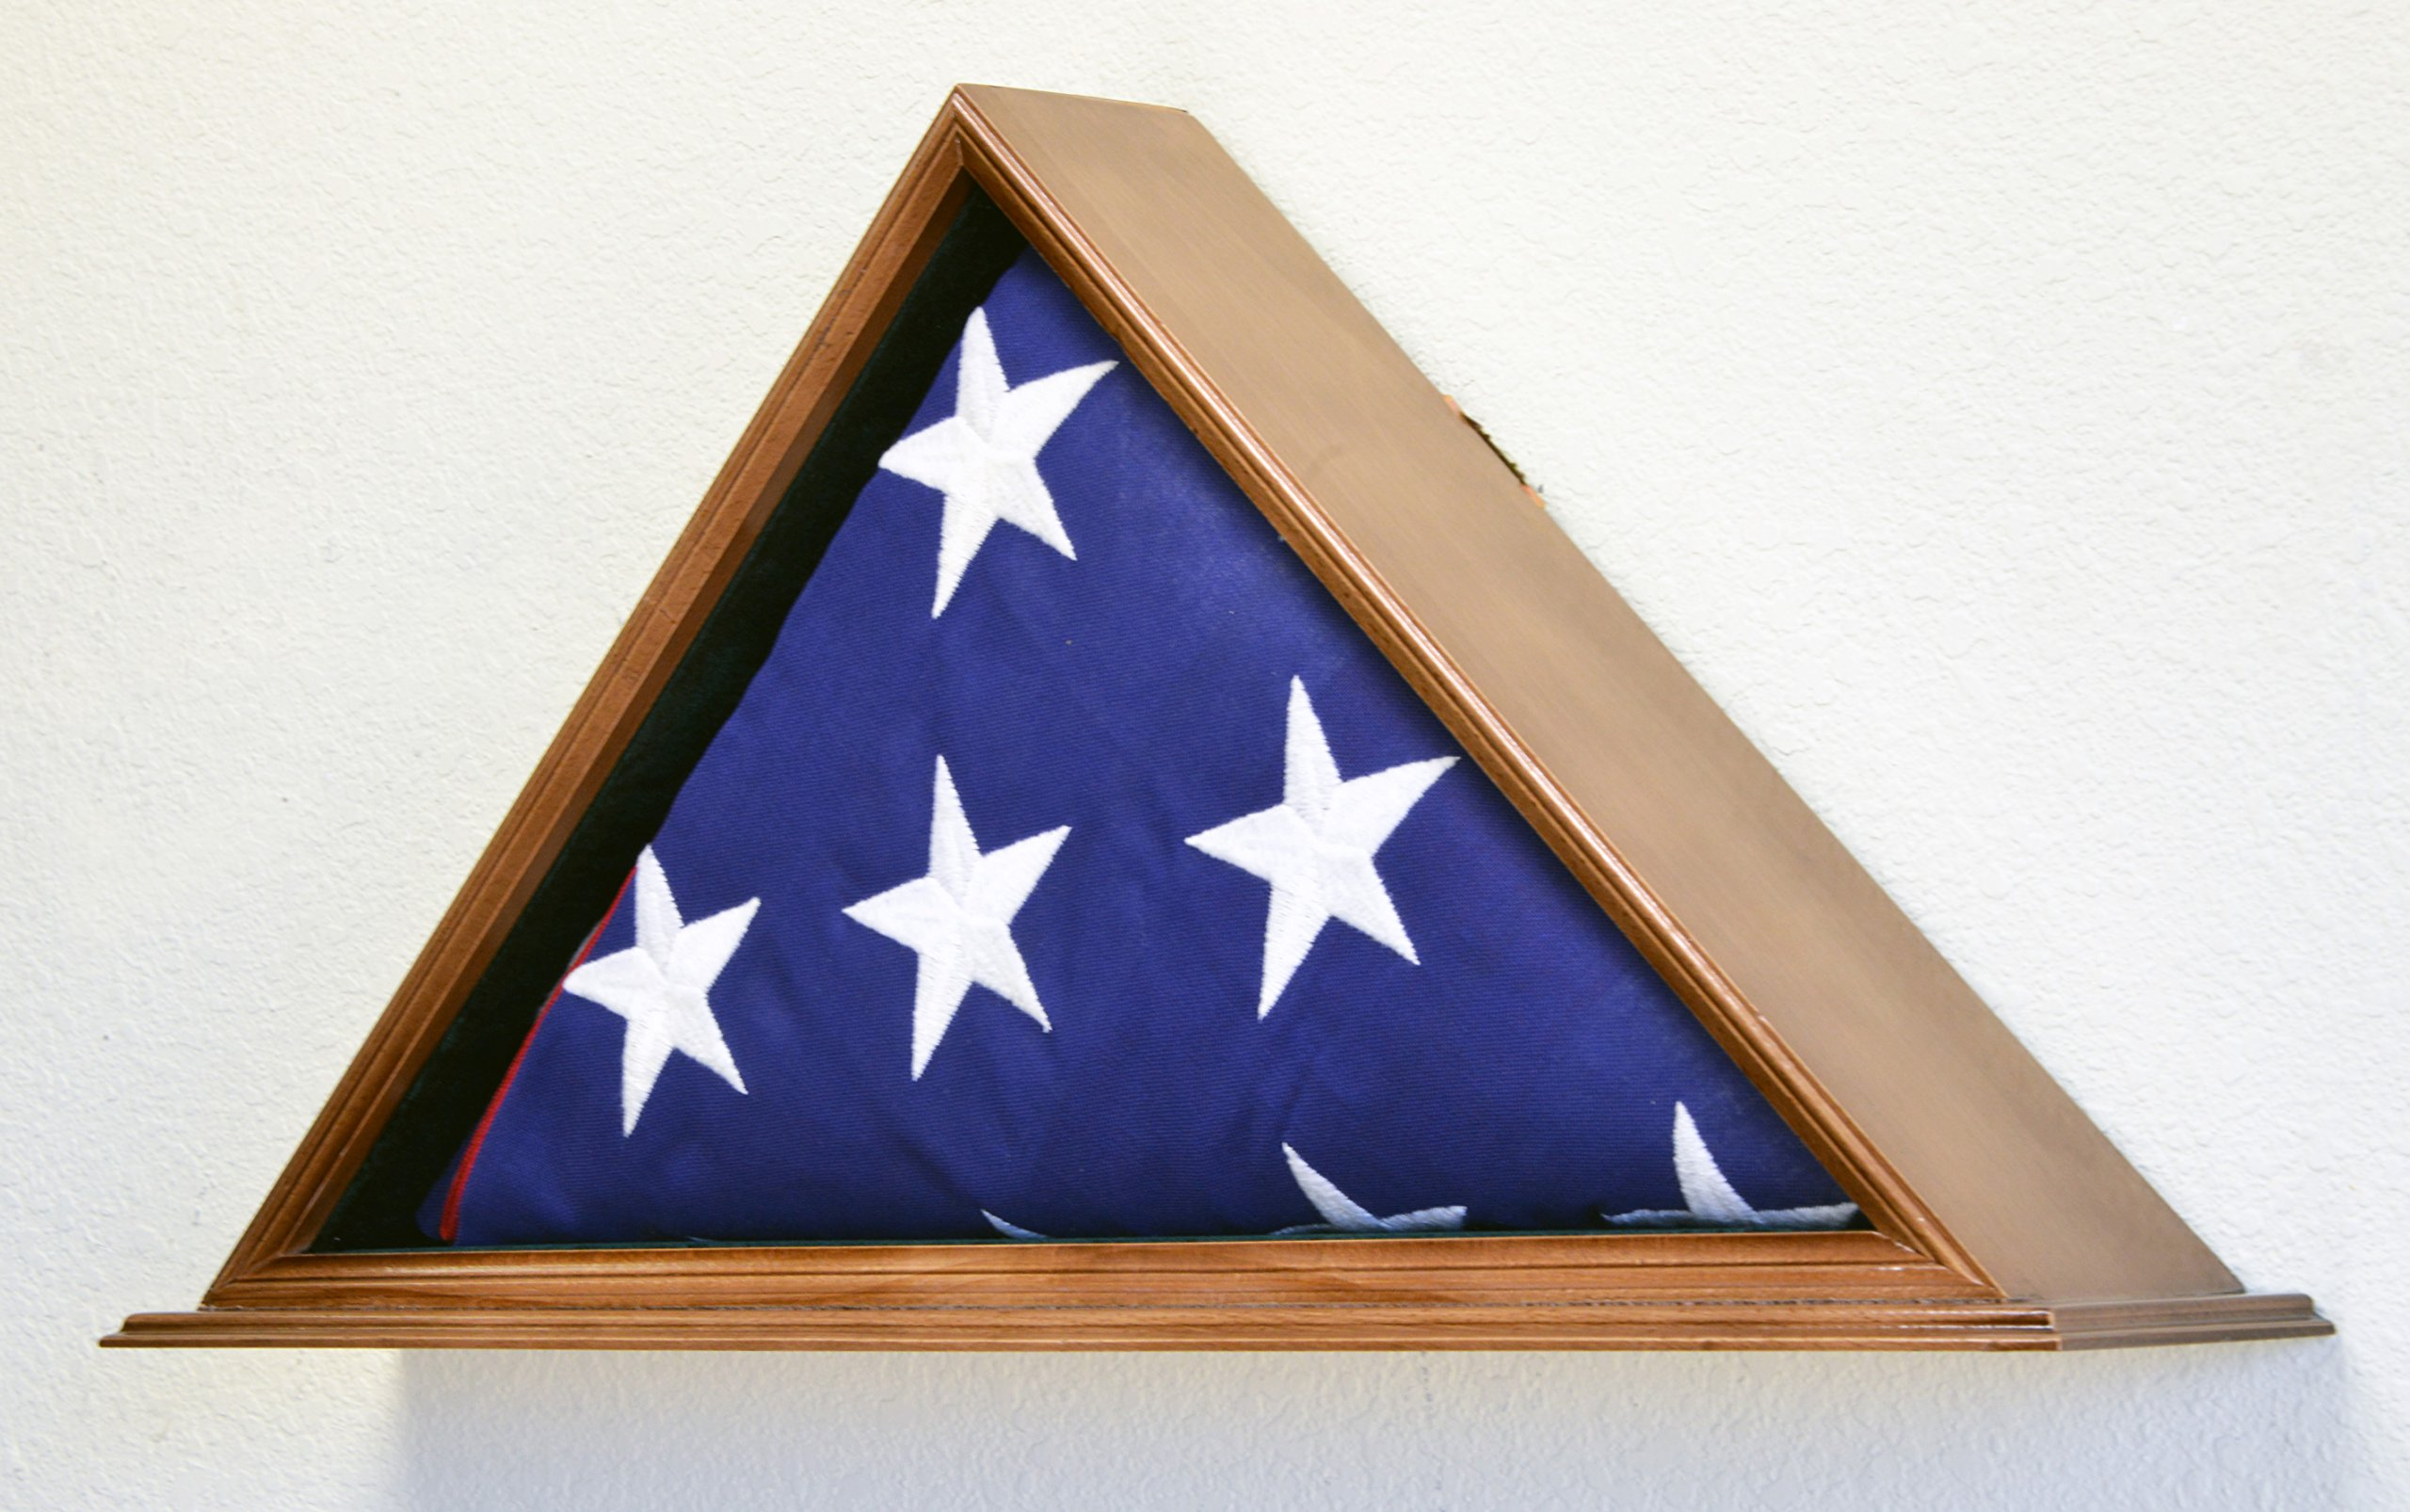 Flag Display Case for 5 x 9.5 Burial/Funeral/Casket/Veterans Military Flag Box Solid Wood USA (Walnut Finish) by sfDisplay.com,LLC. (Image #1)